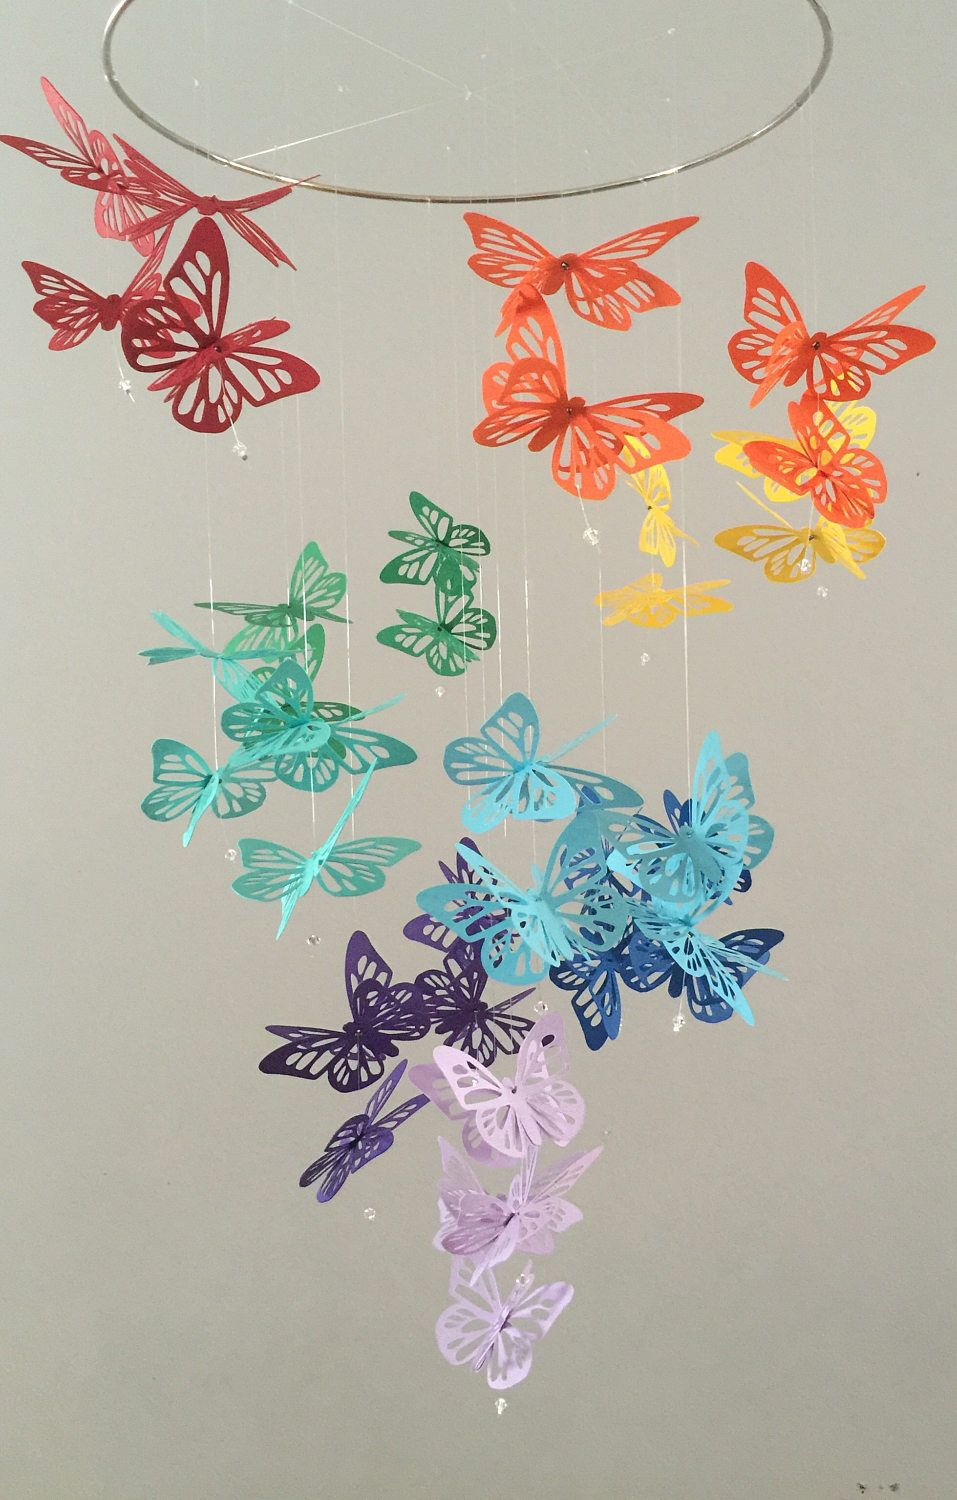 Spiral butterfly chandelier mobile rainbow nursery mobile baby spiral butterfly chandelier mobile rainbow nursery mobile baby girl mobile photo prop aloadofball Choice Image